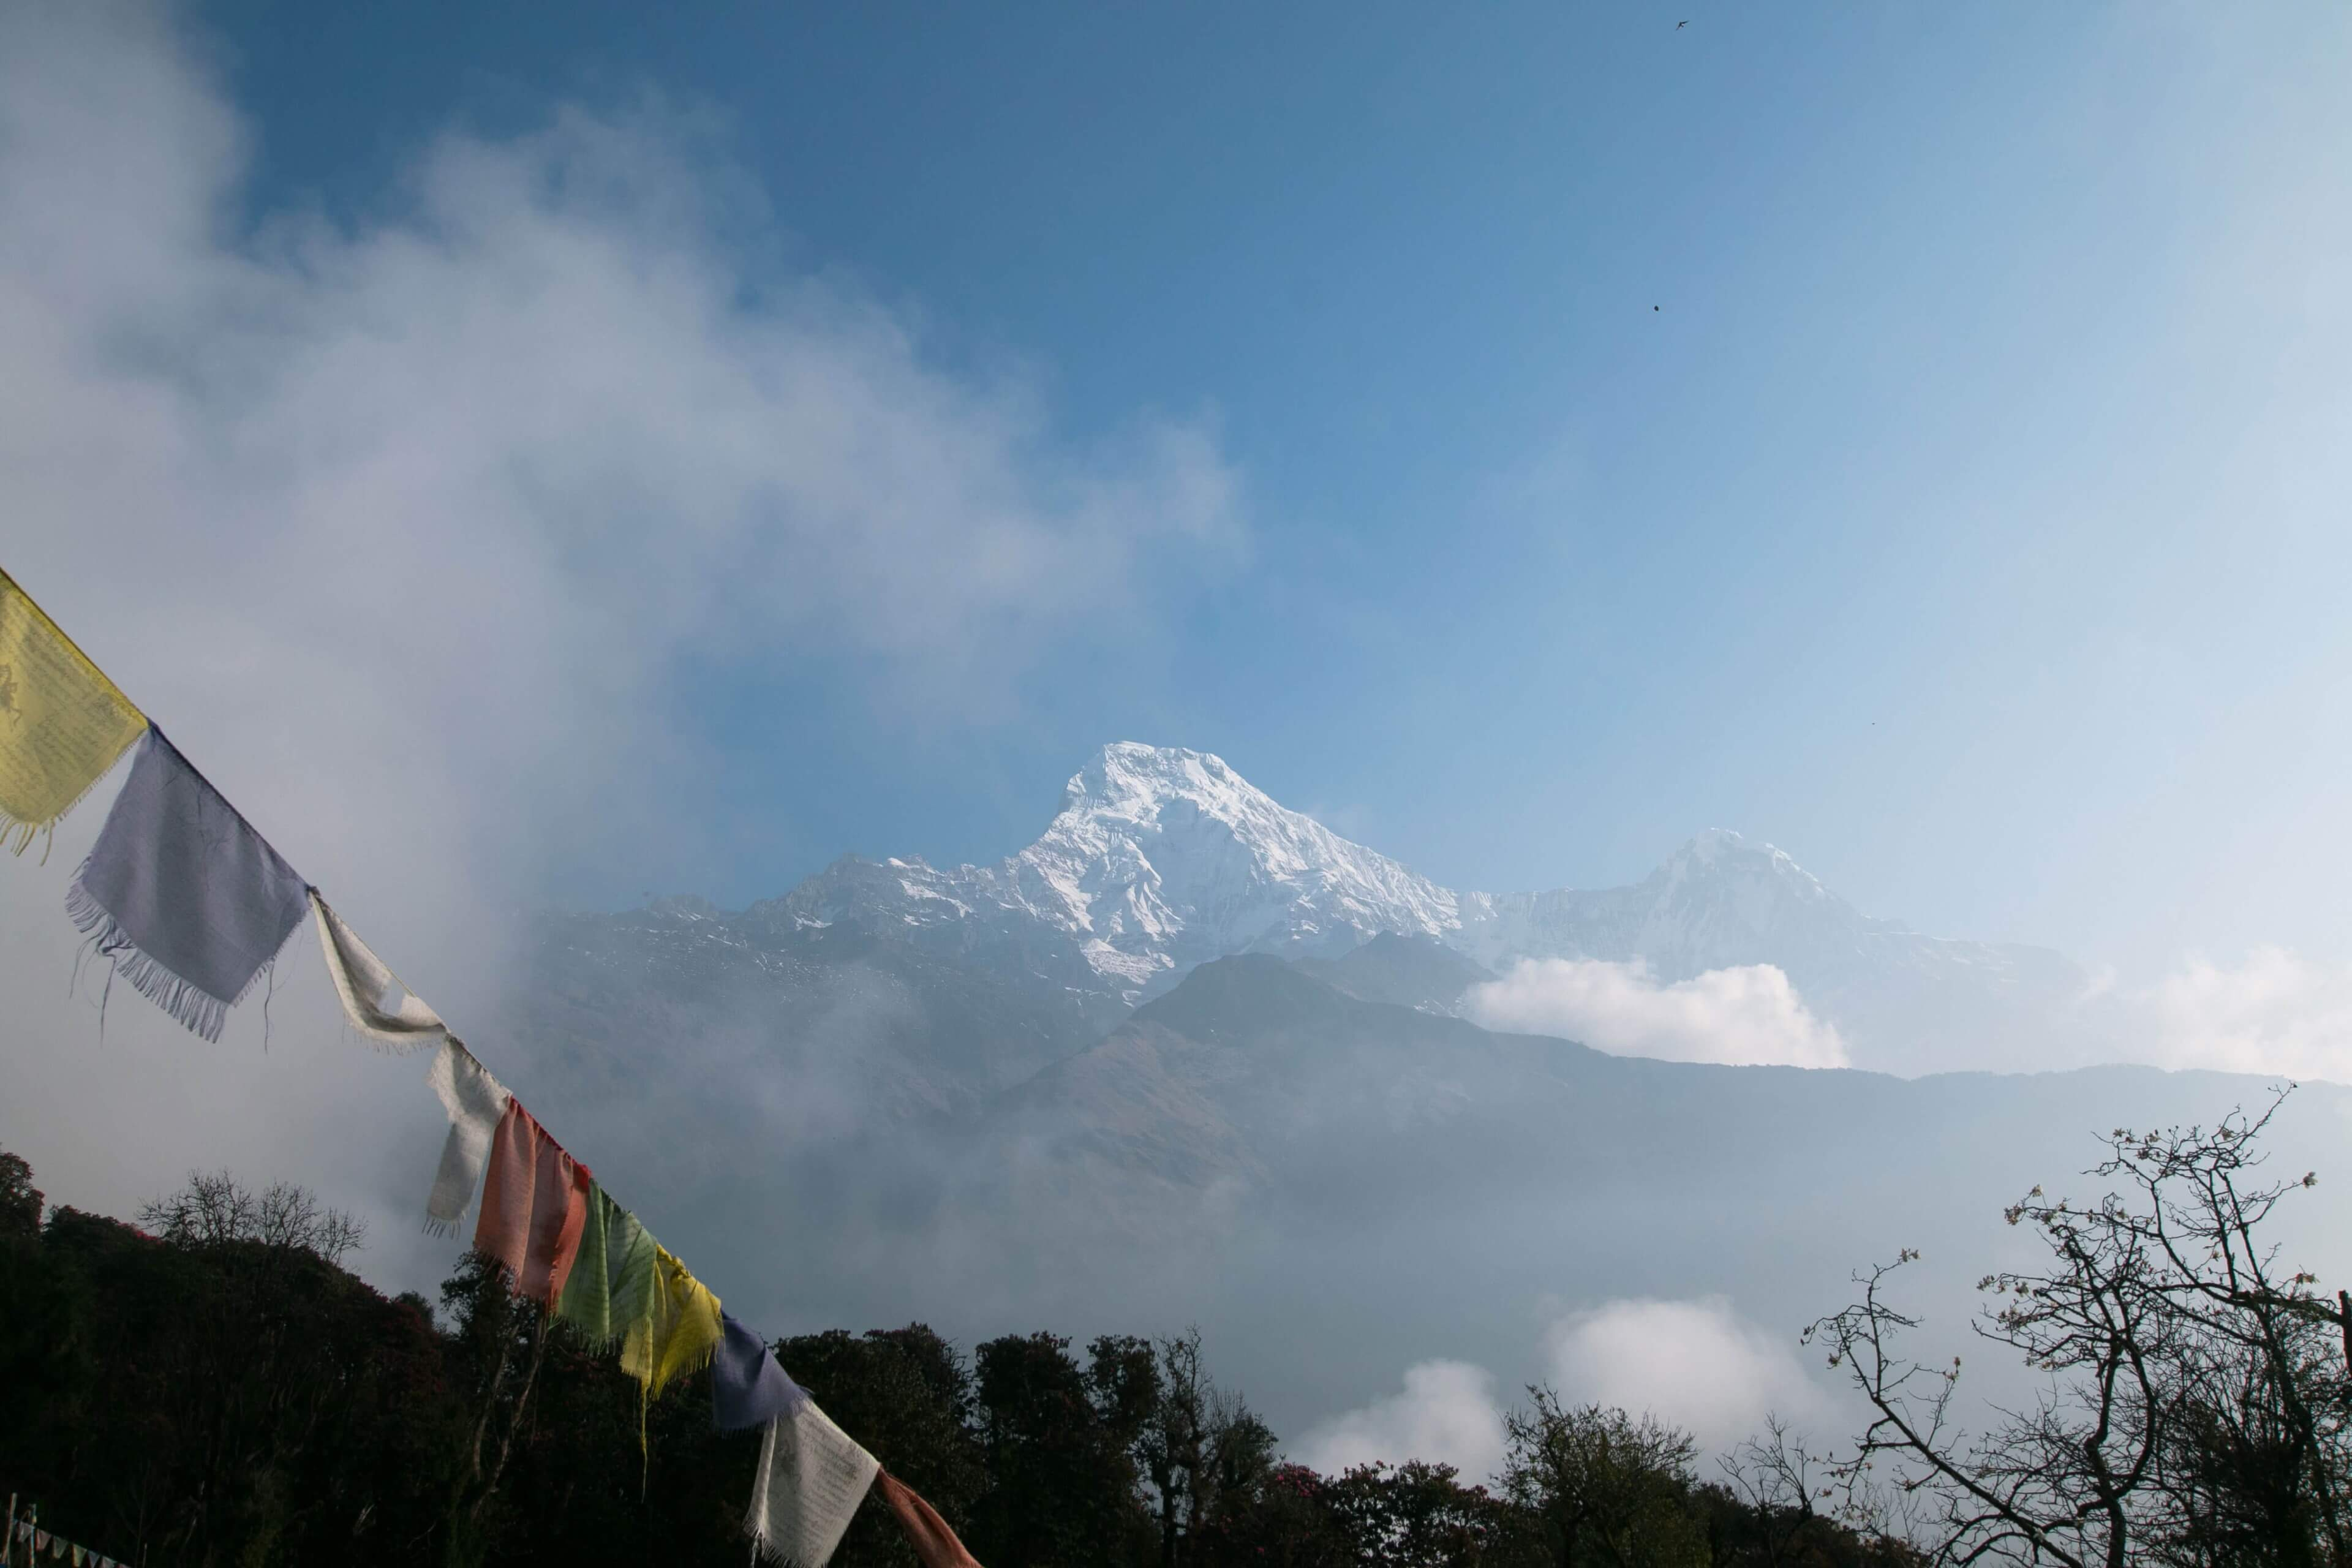 Looking Towards Annapurna 1 (8091m) from Chommrong